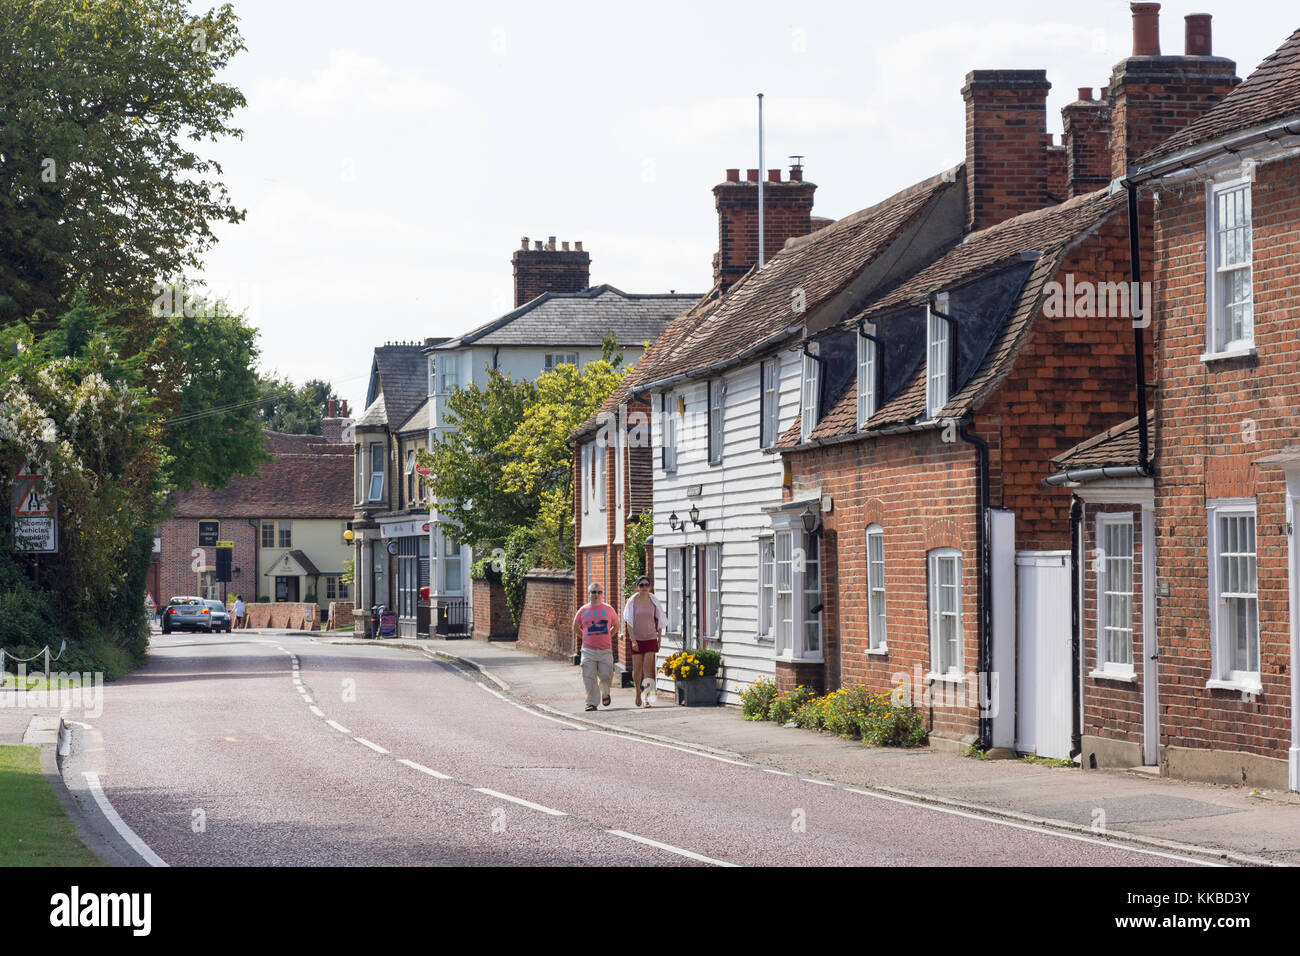 High Street, Stock, Essex, England, United Kingdom - Stock Image